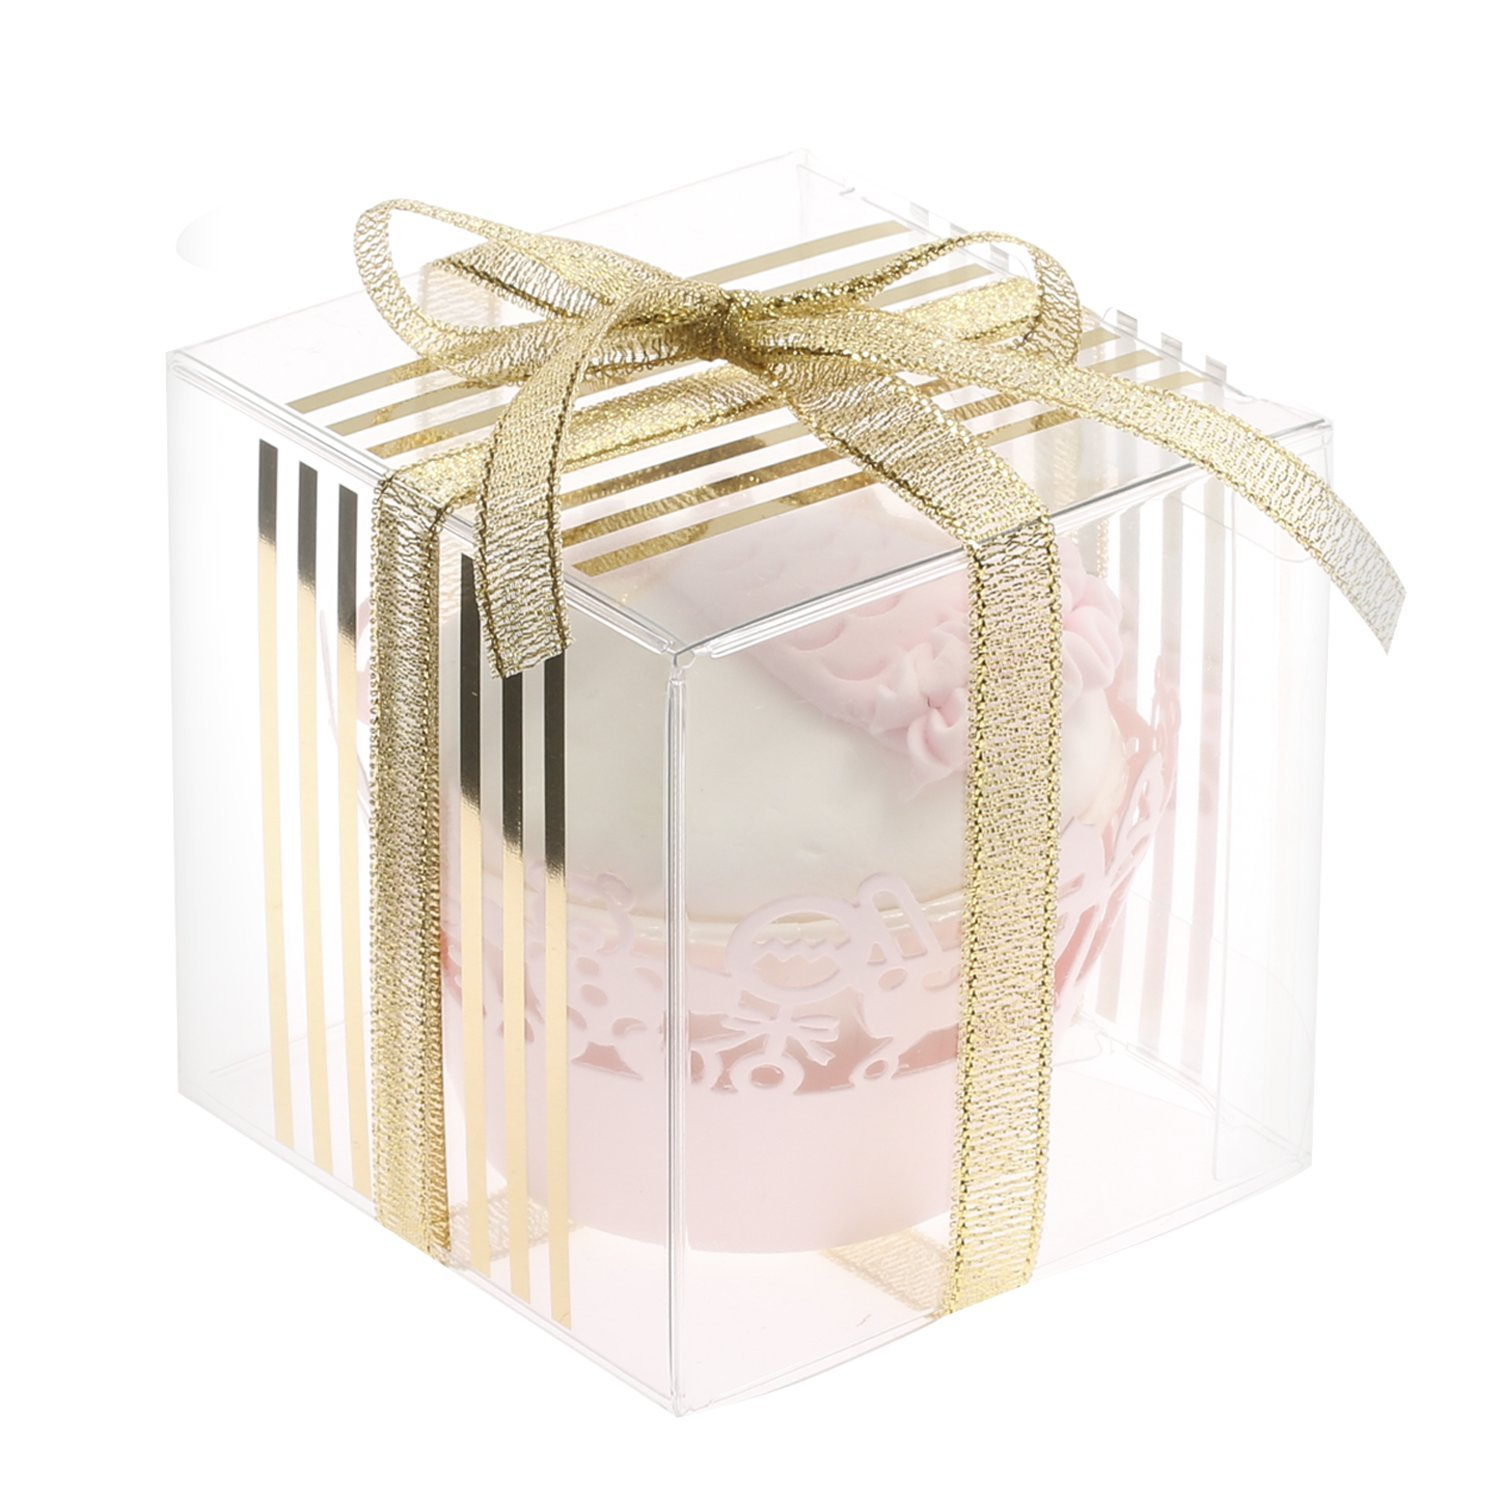 Ling\'s moment 100 pcs 3x3x3 Gold Favor Box, Clear Cake Boxes for ...